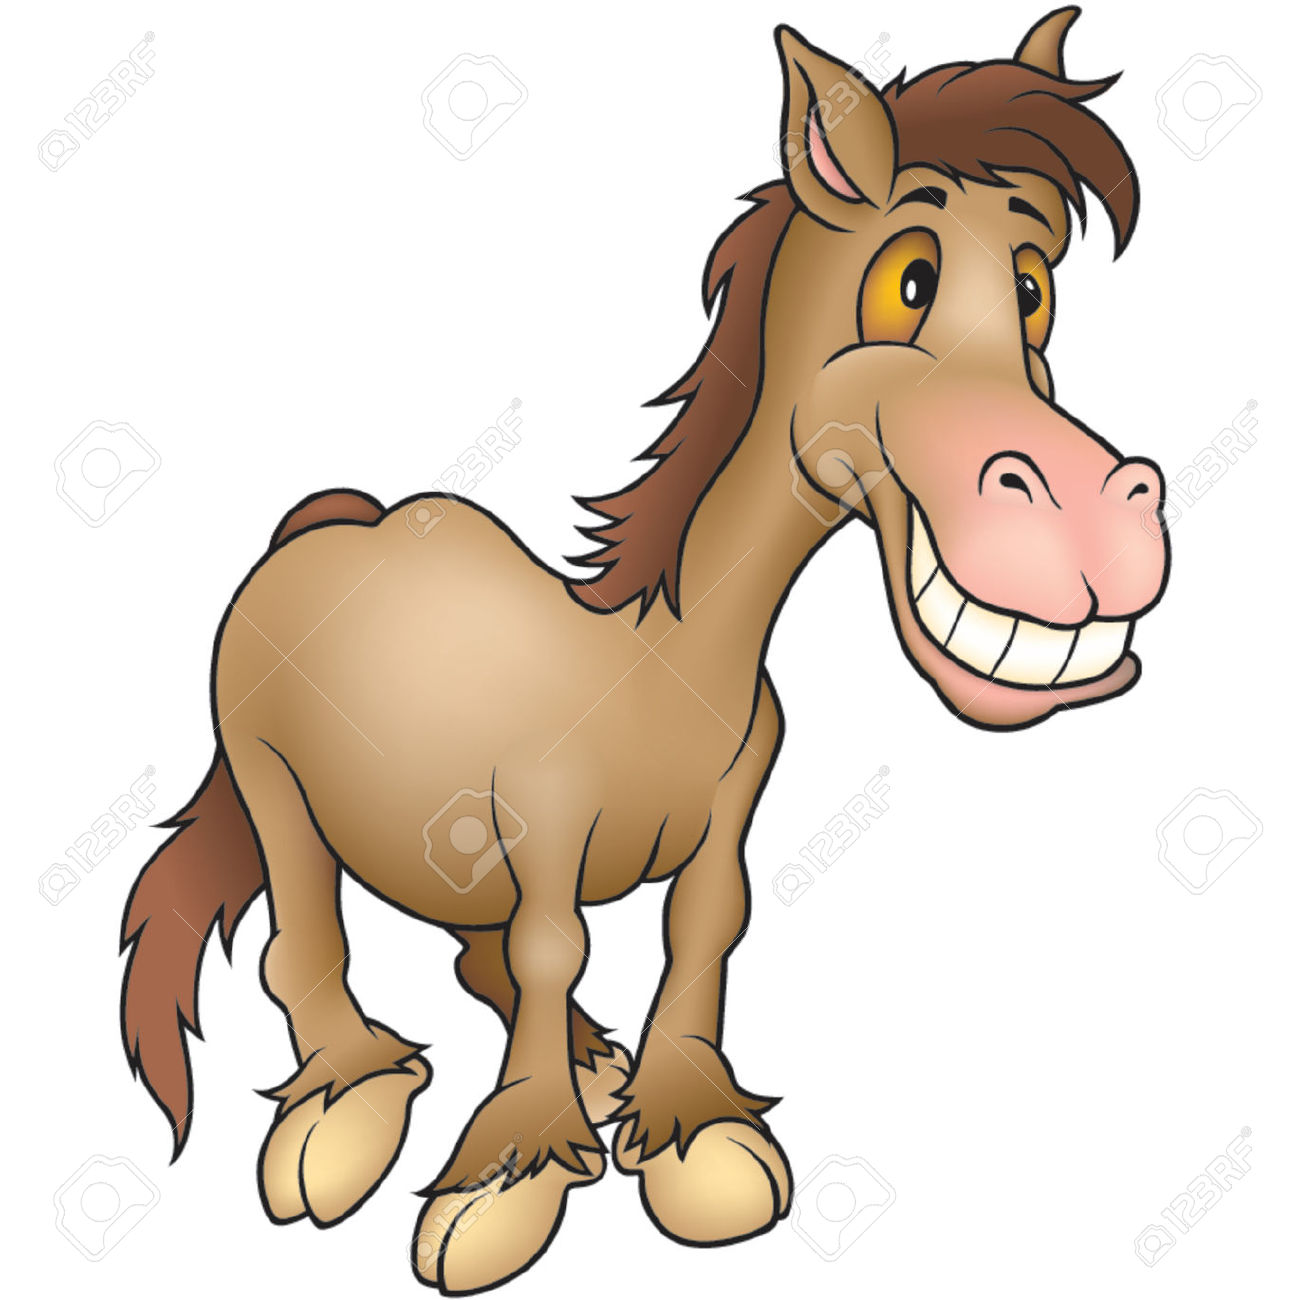 Cavallo clipart #9, Download drawings